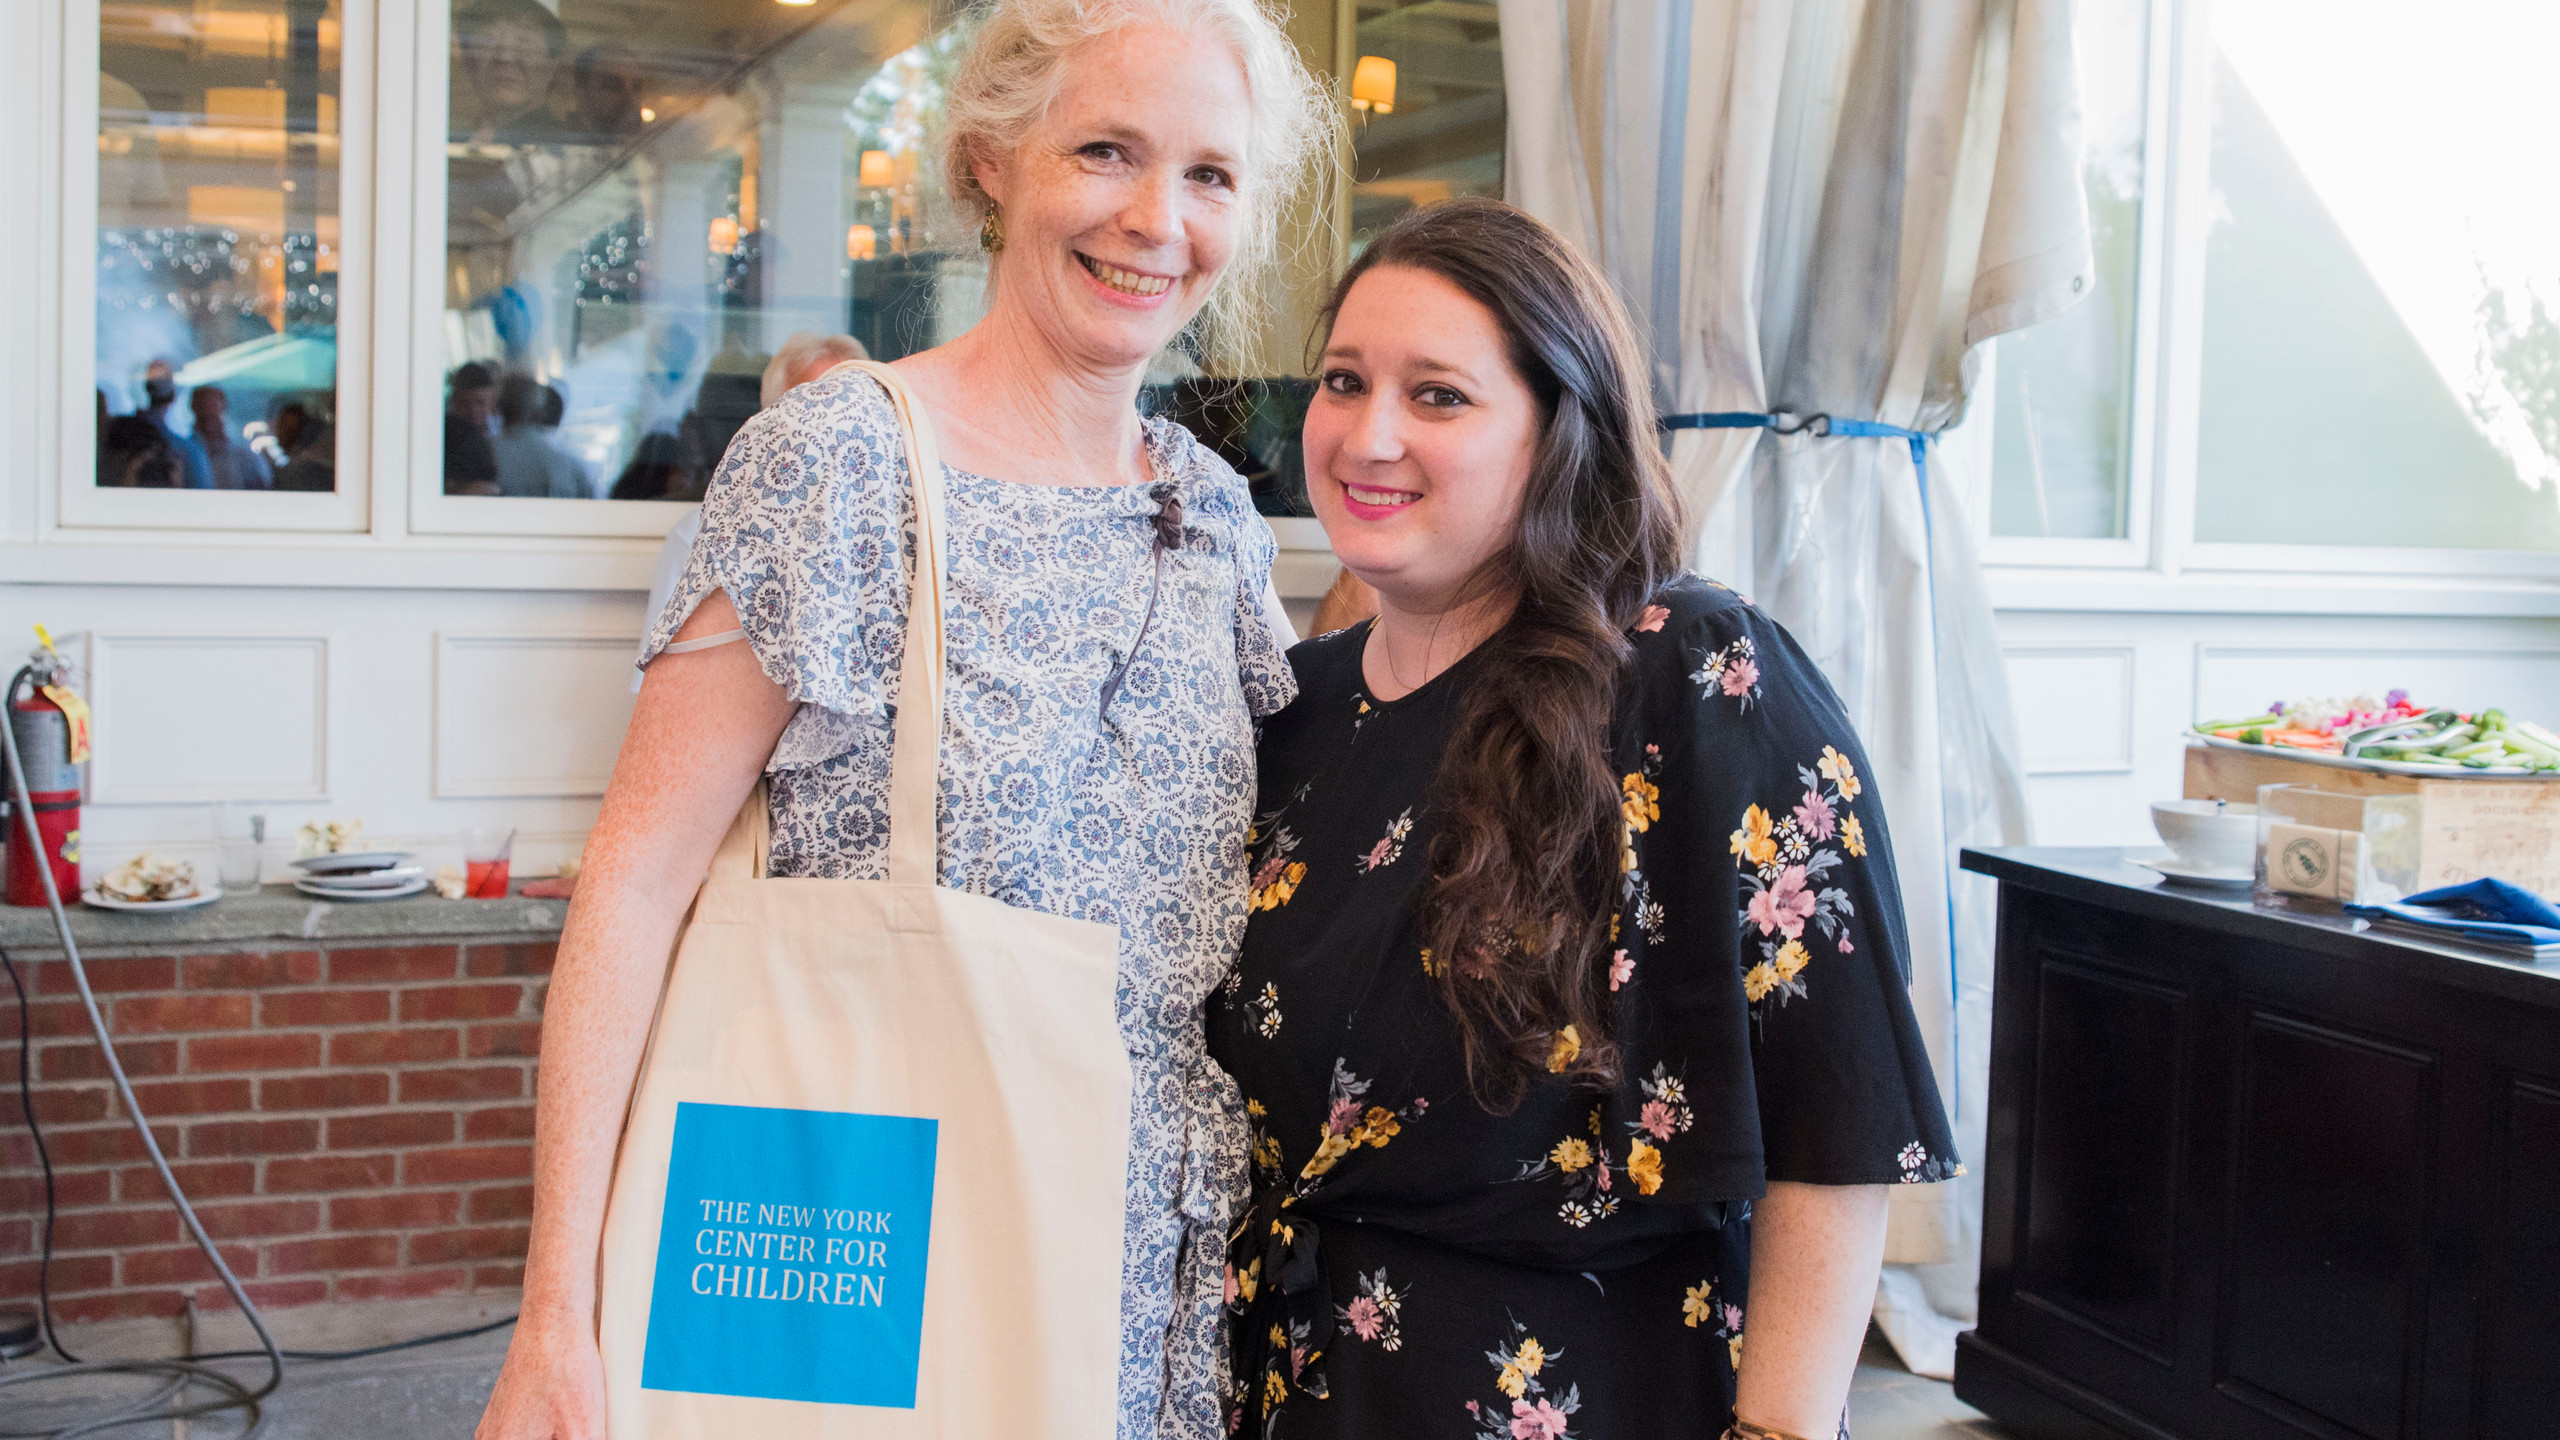 Christine Crowther (left) with Jennifer Grubman (right), The New York Center for Children.